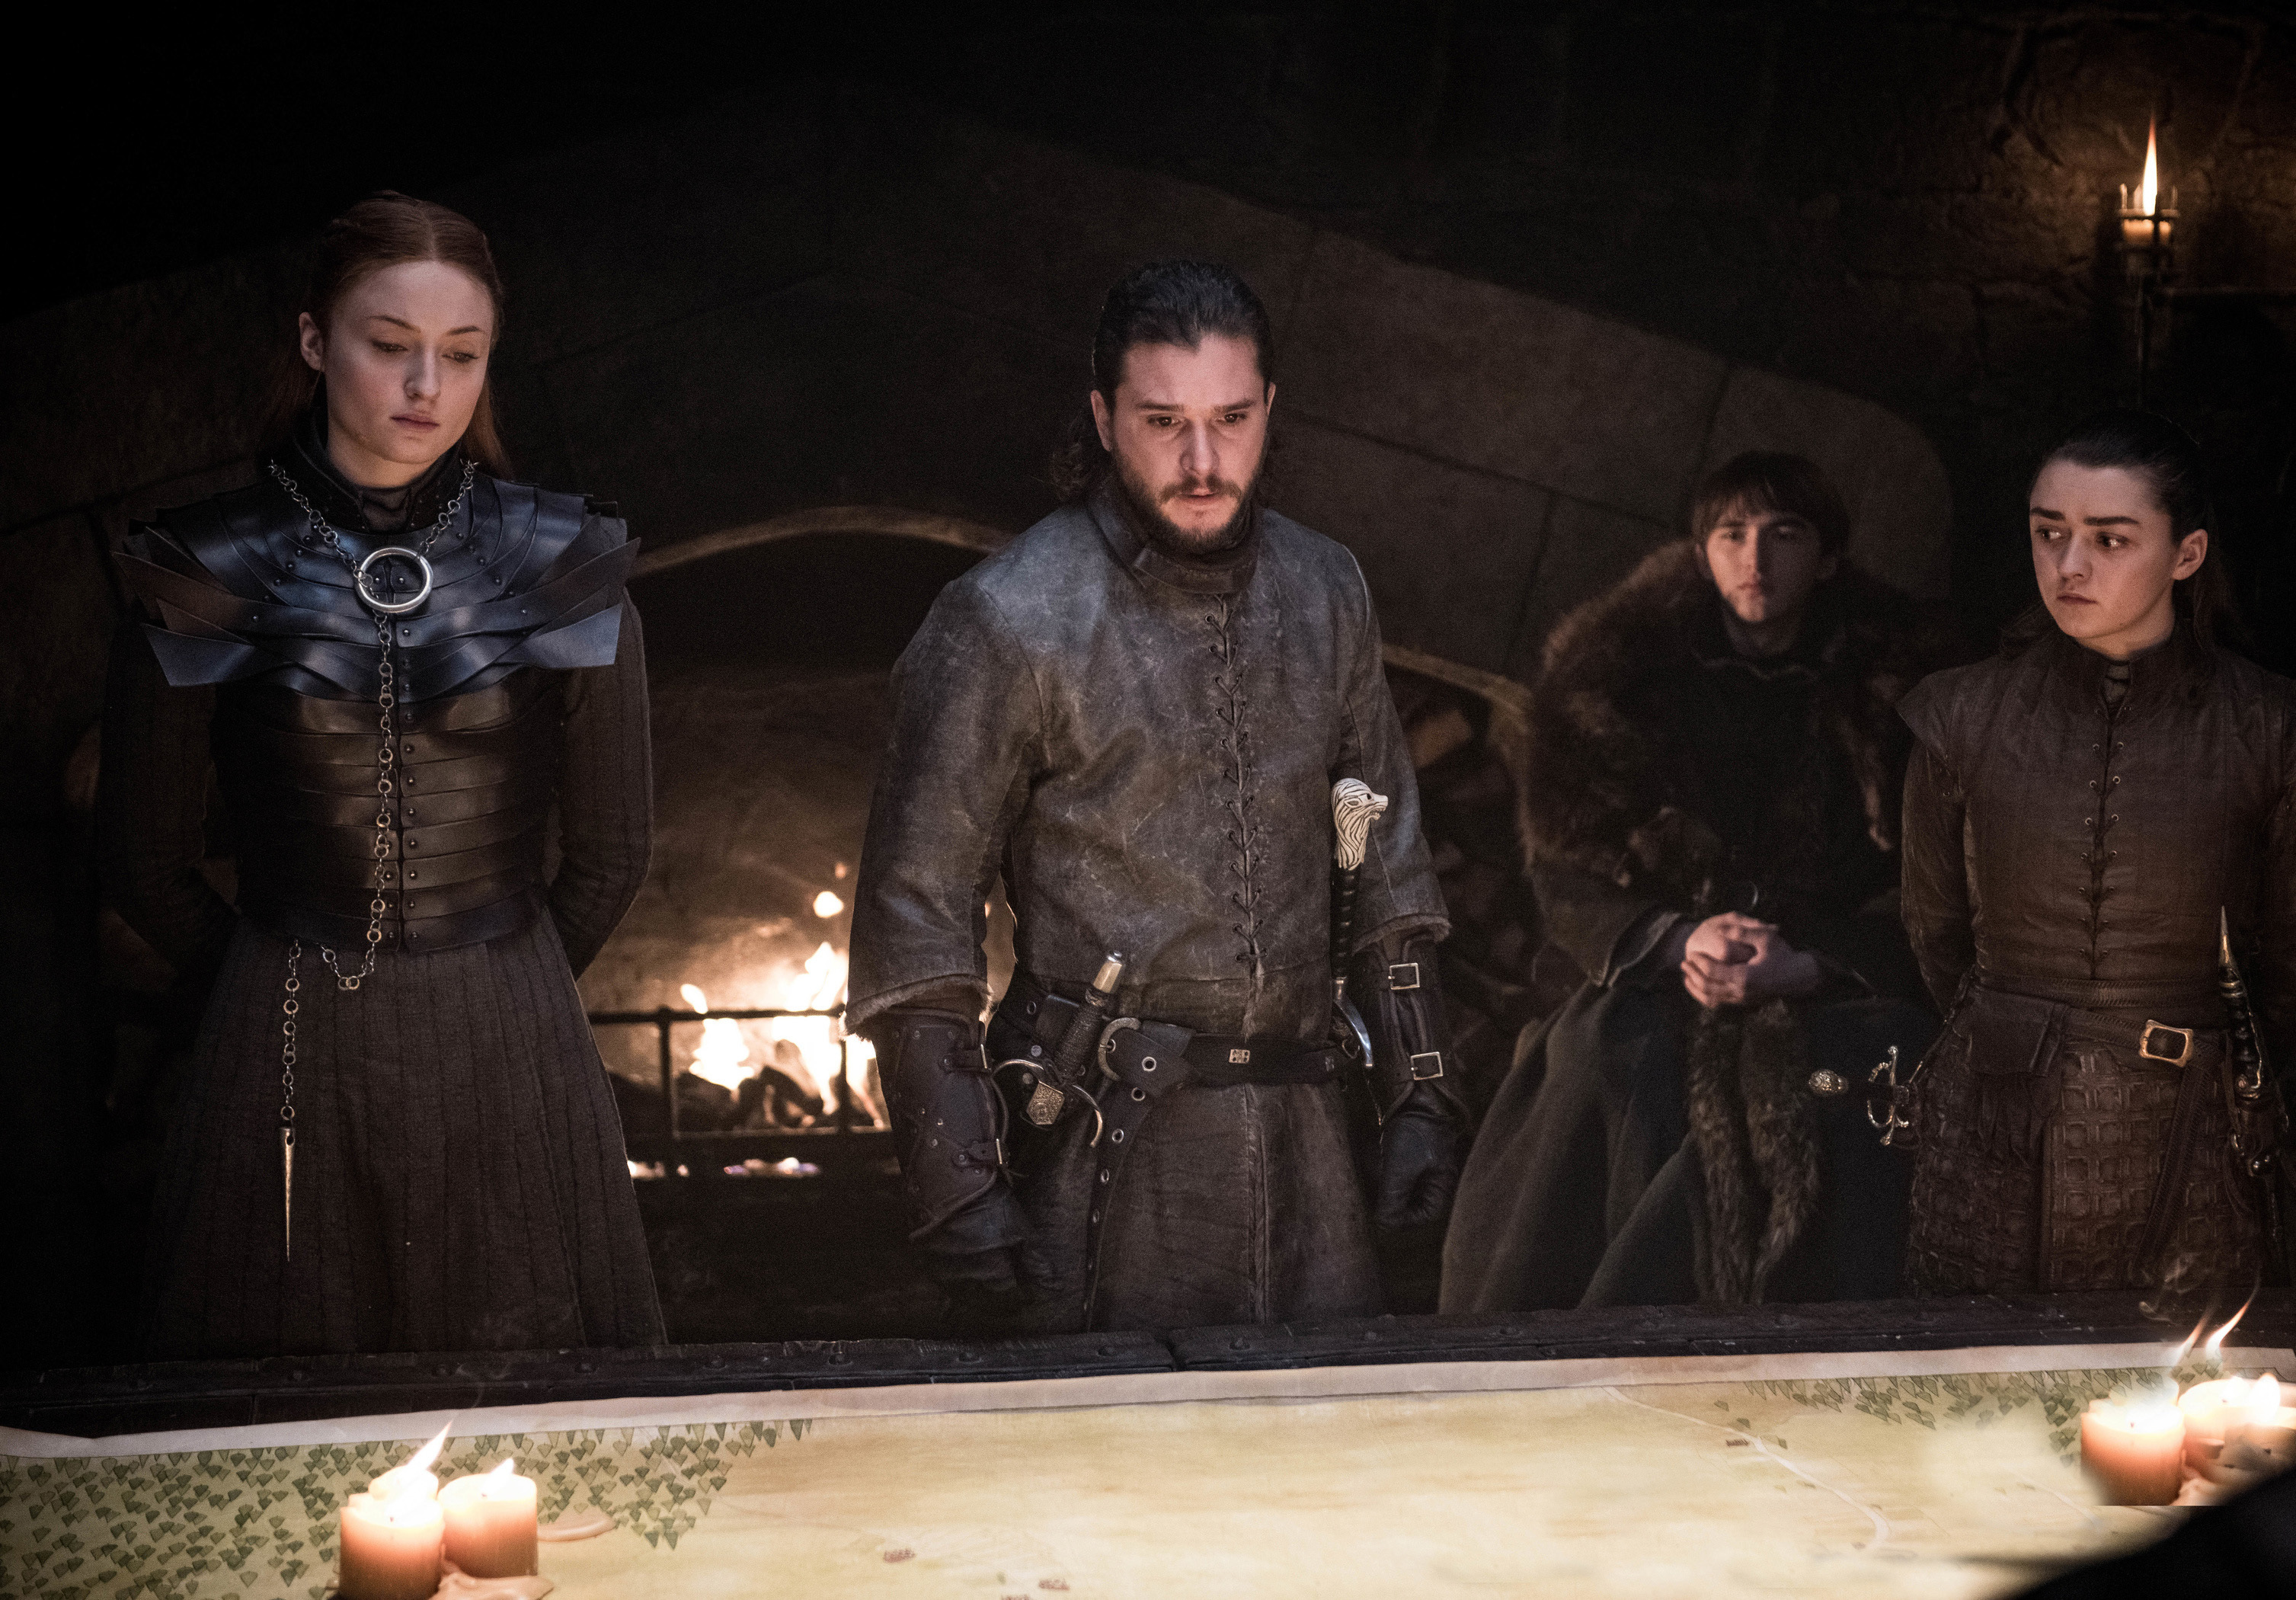 Game of Thrones' White Walker battle is here. But is Winterfell ready?